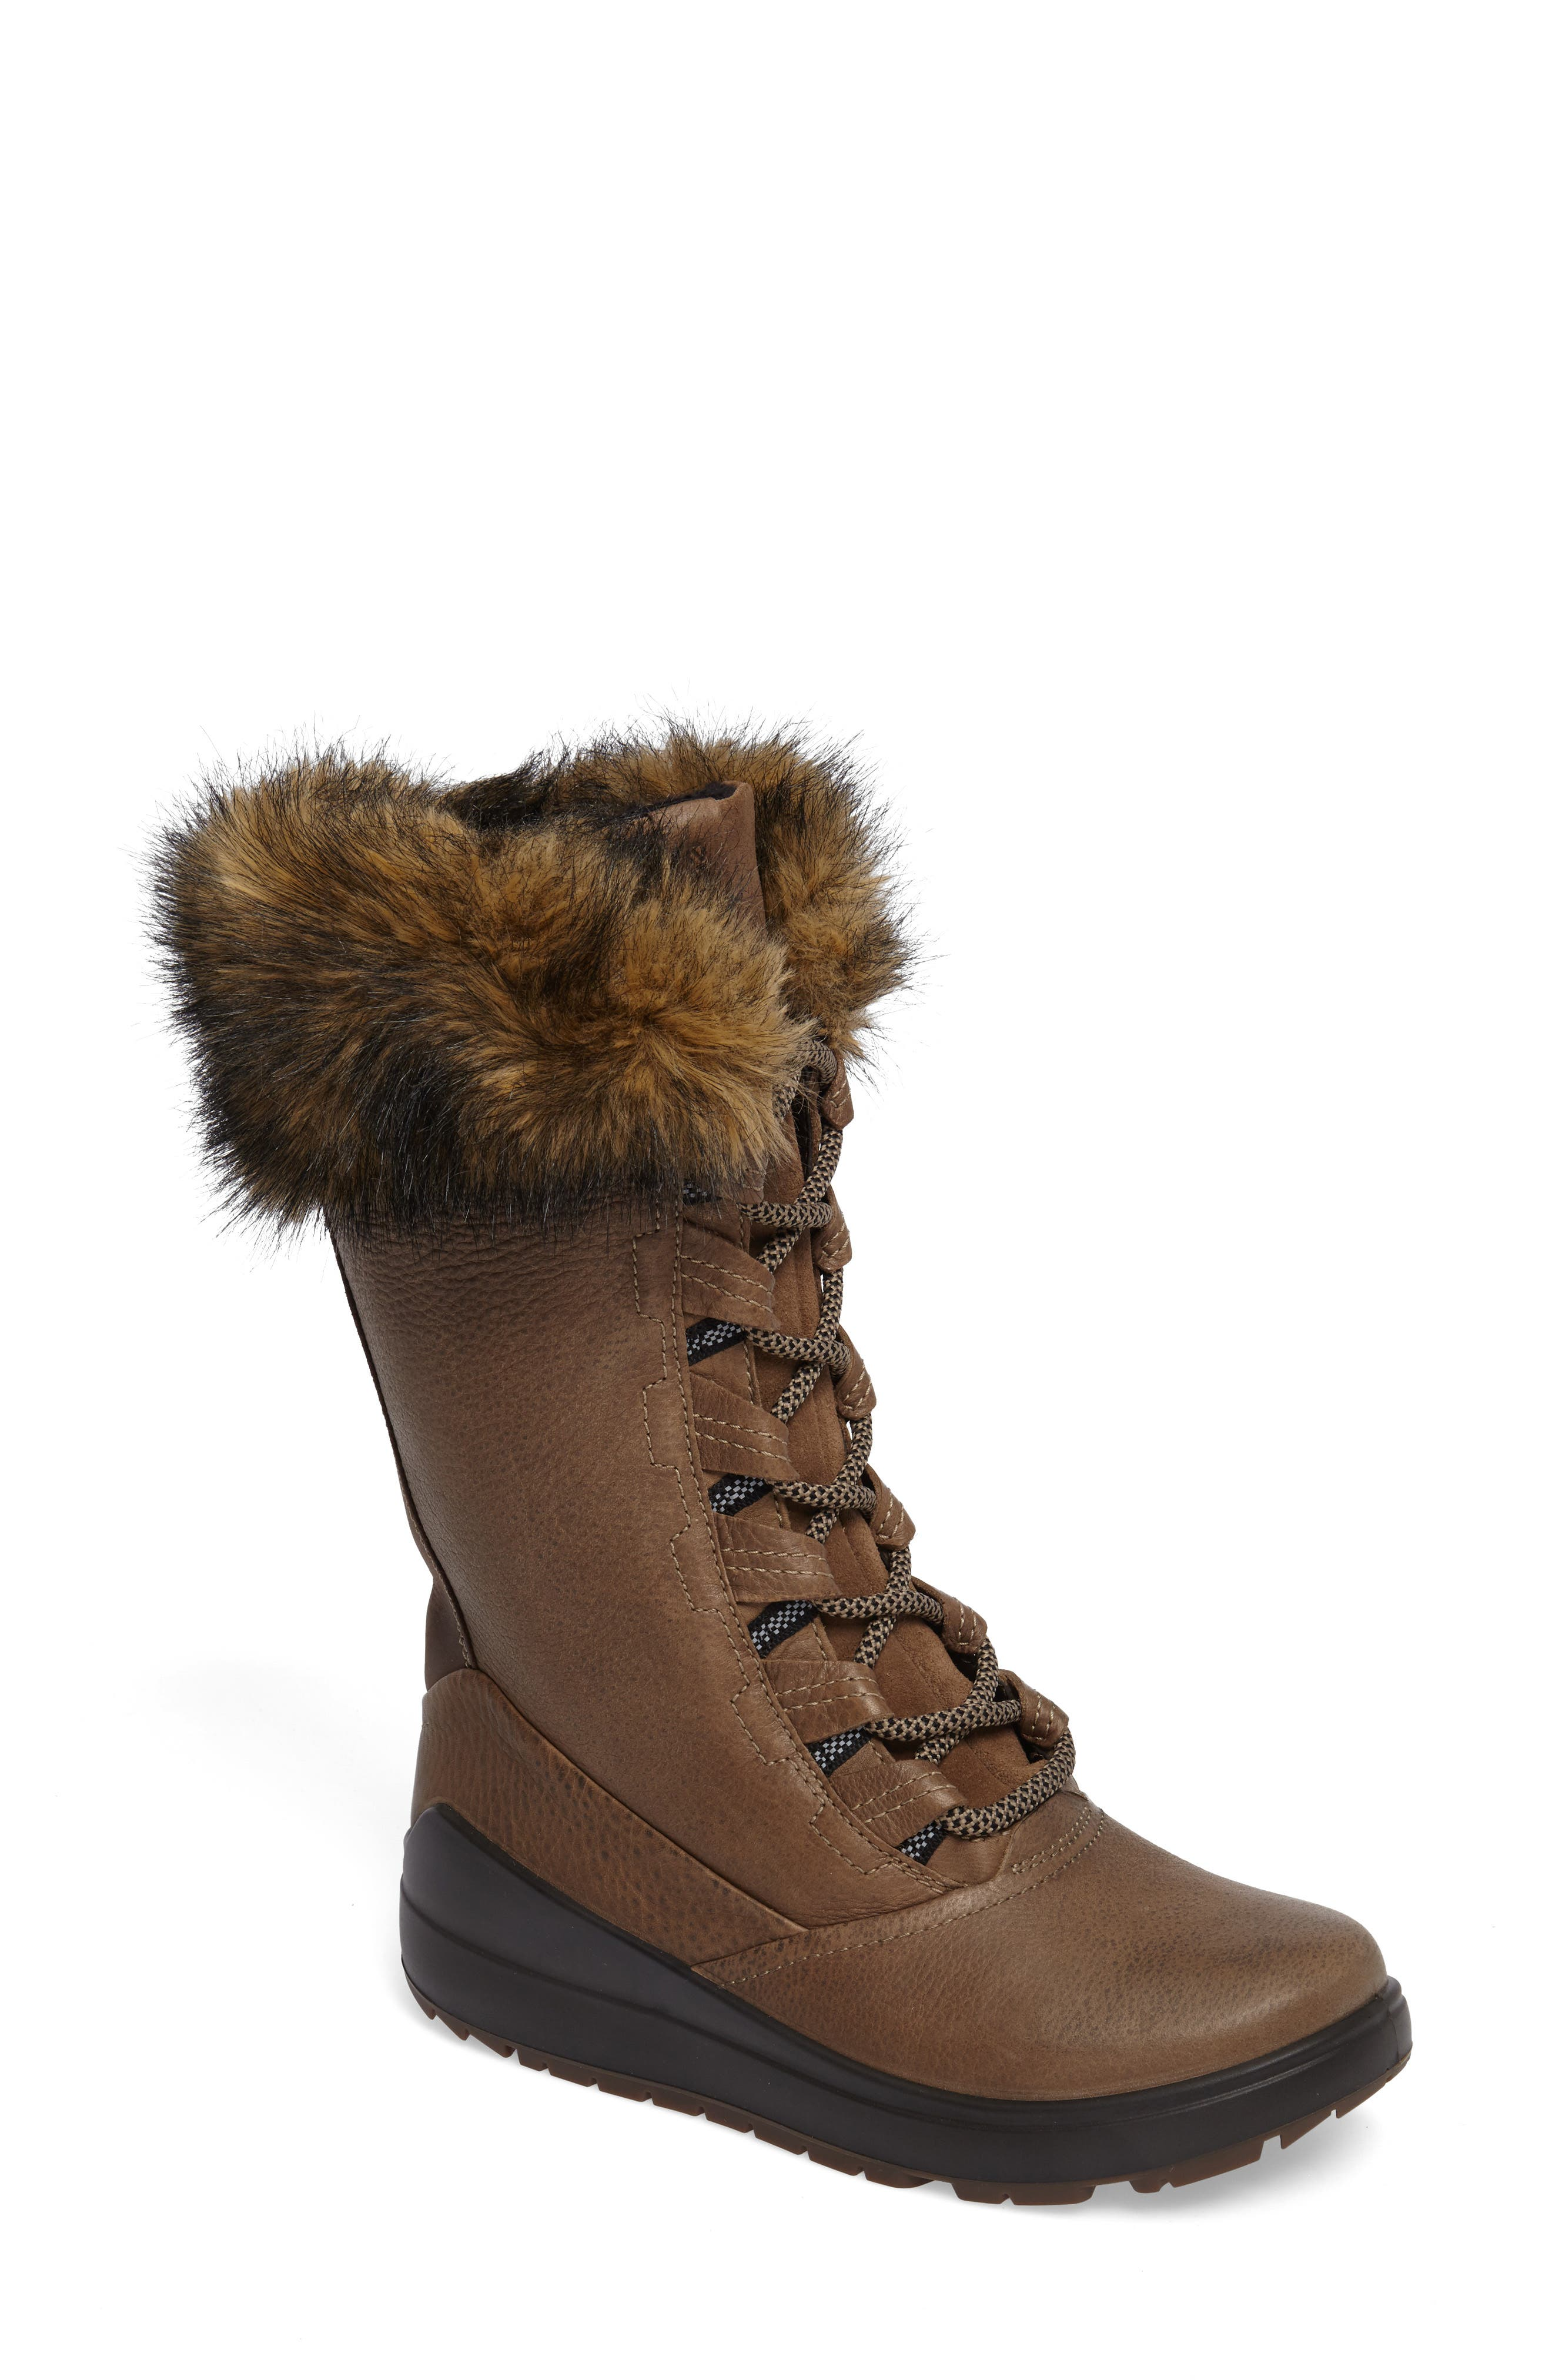 Noyce Siberia Hydromax Water Resistant Winter Boot with Faux Fur Trim,                             Main thumbnail 1, color,                             212